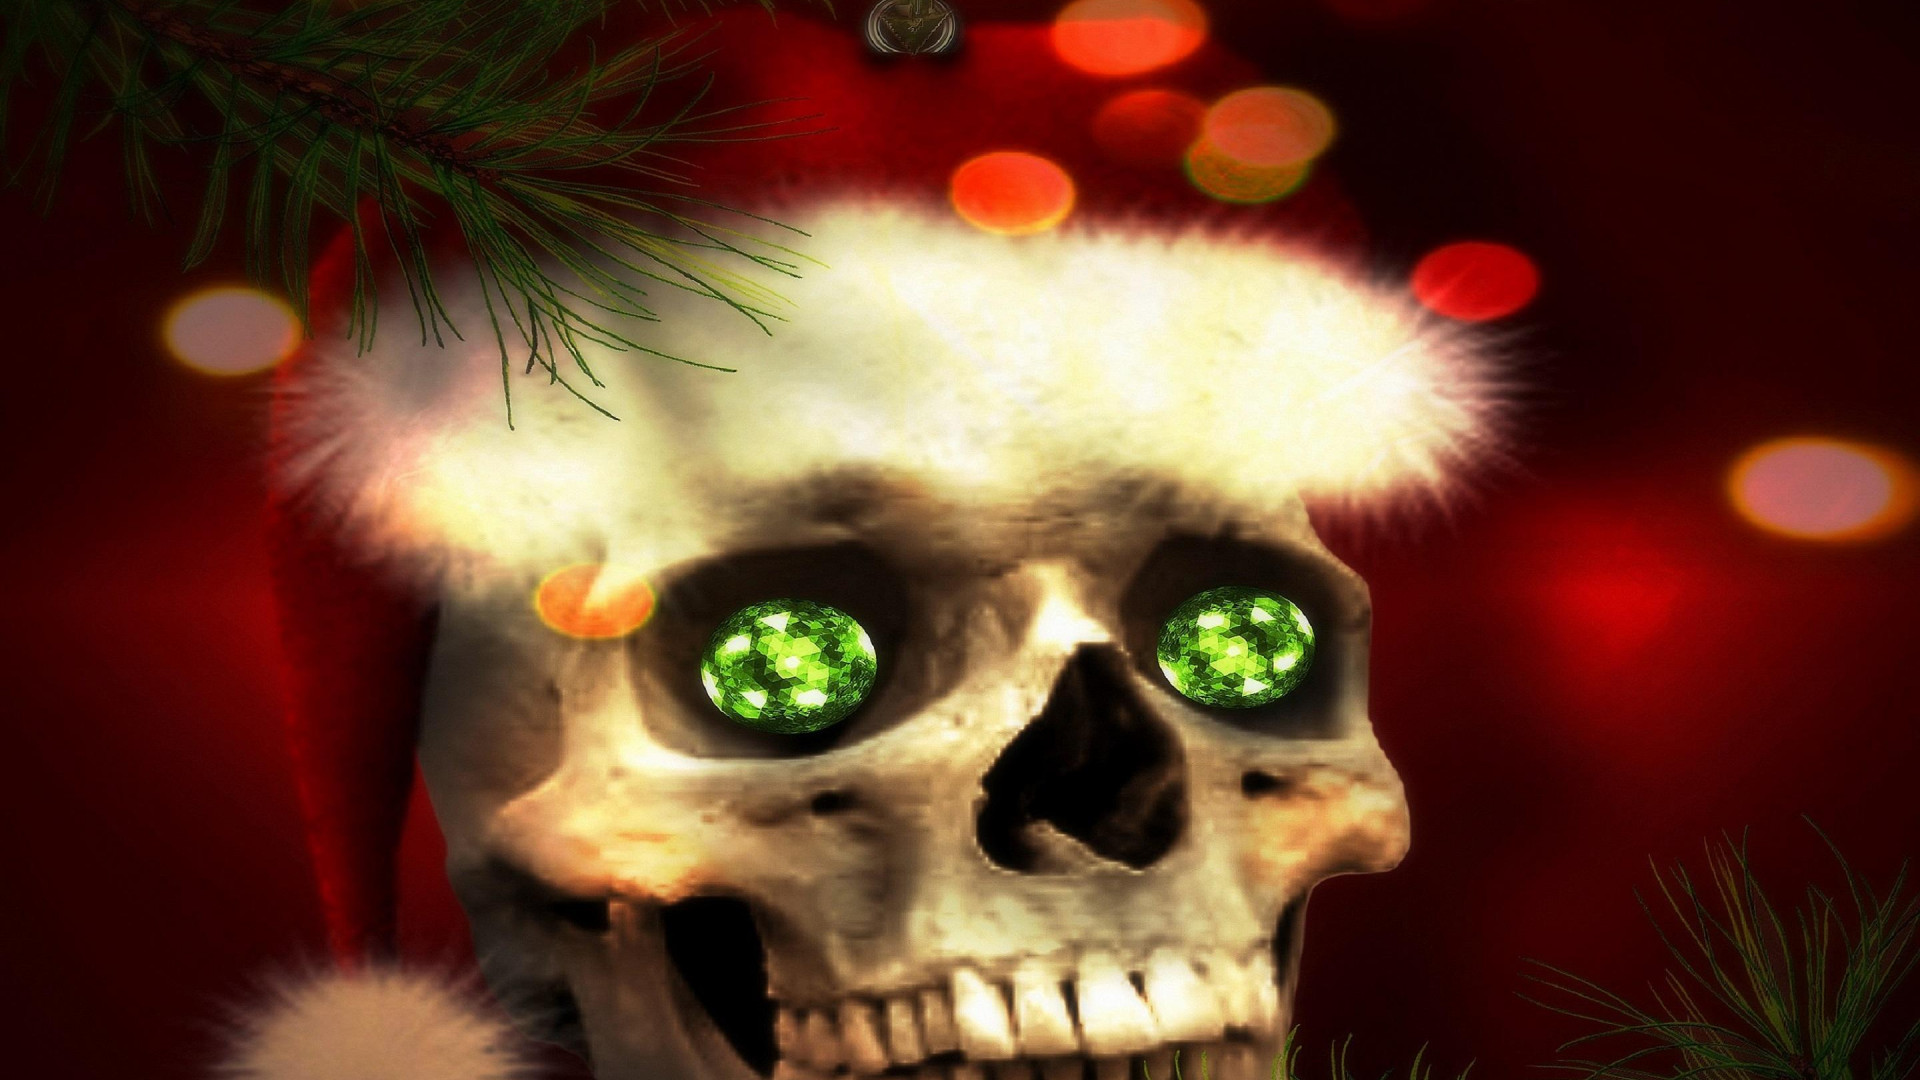 Santa Skull In Christmas HD Desktop Wallpaper